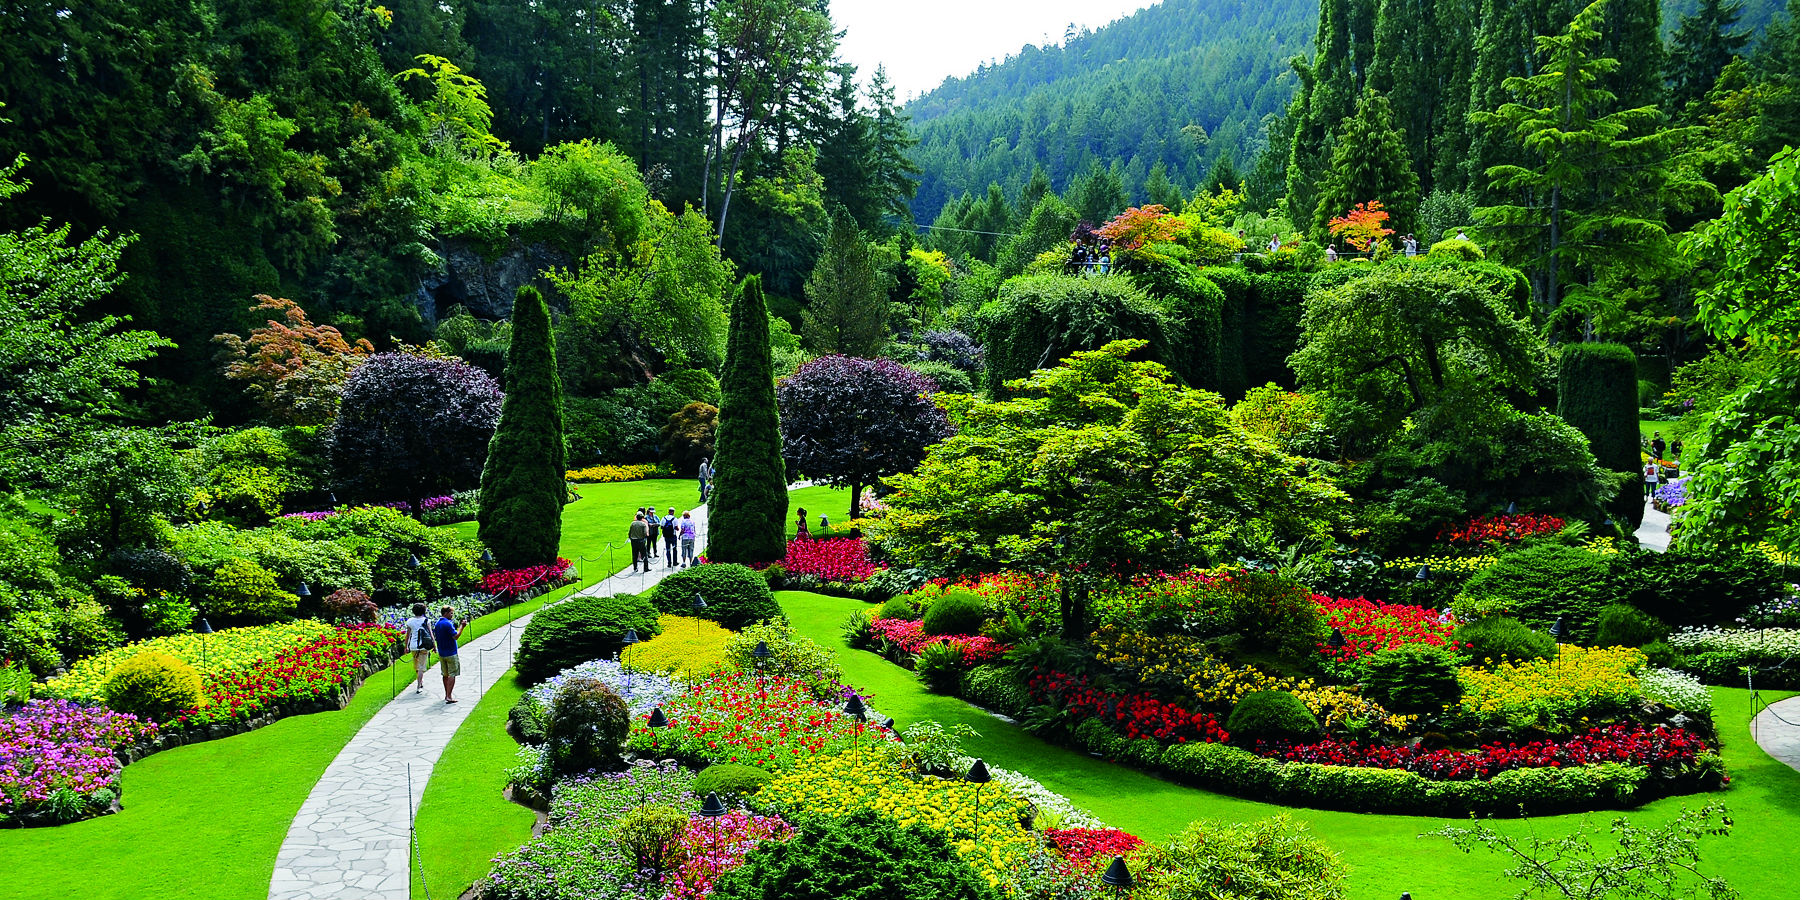 10 Facts About Butchart Gardens Vancouver Island